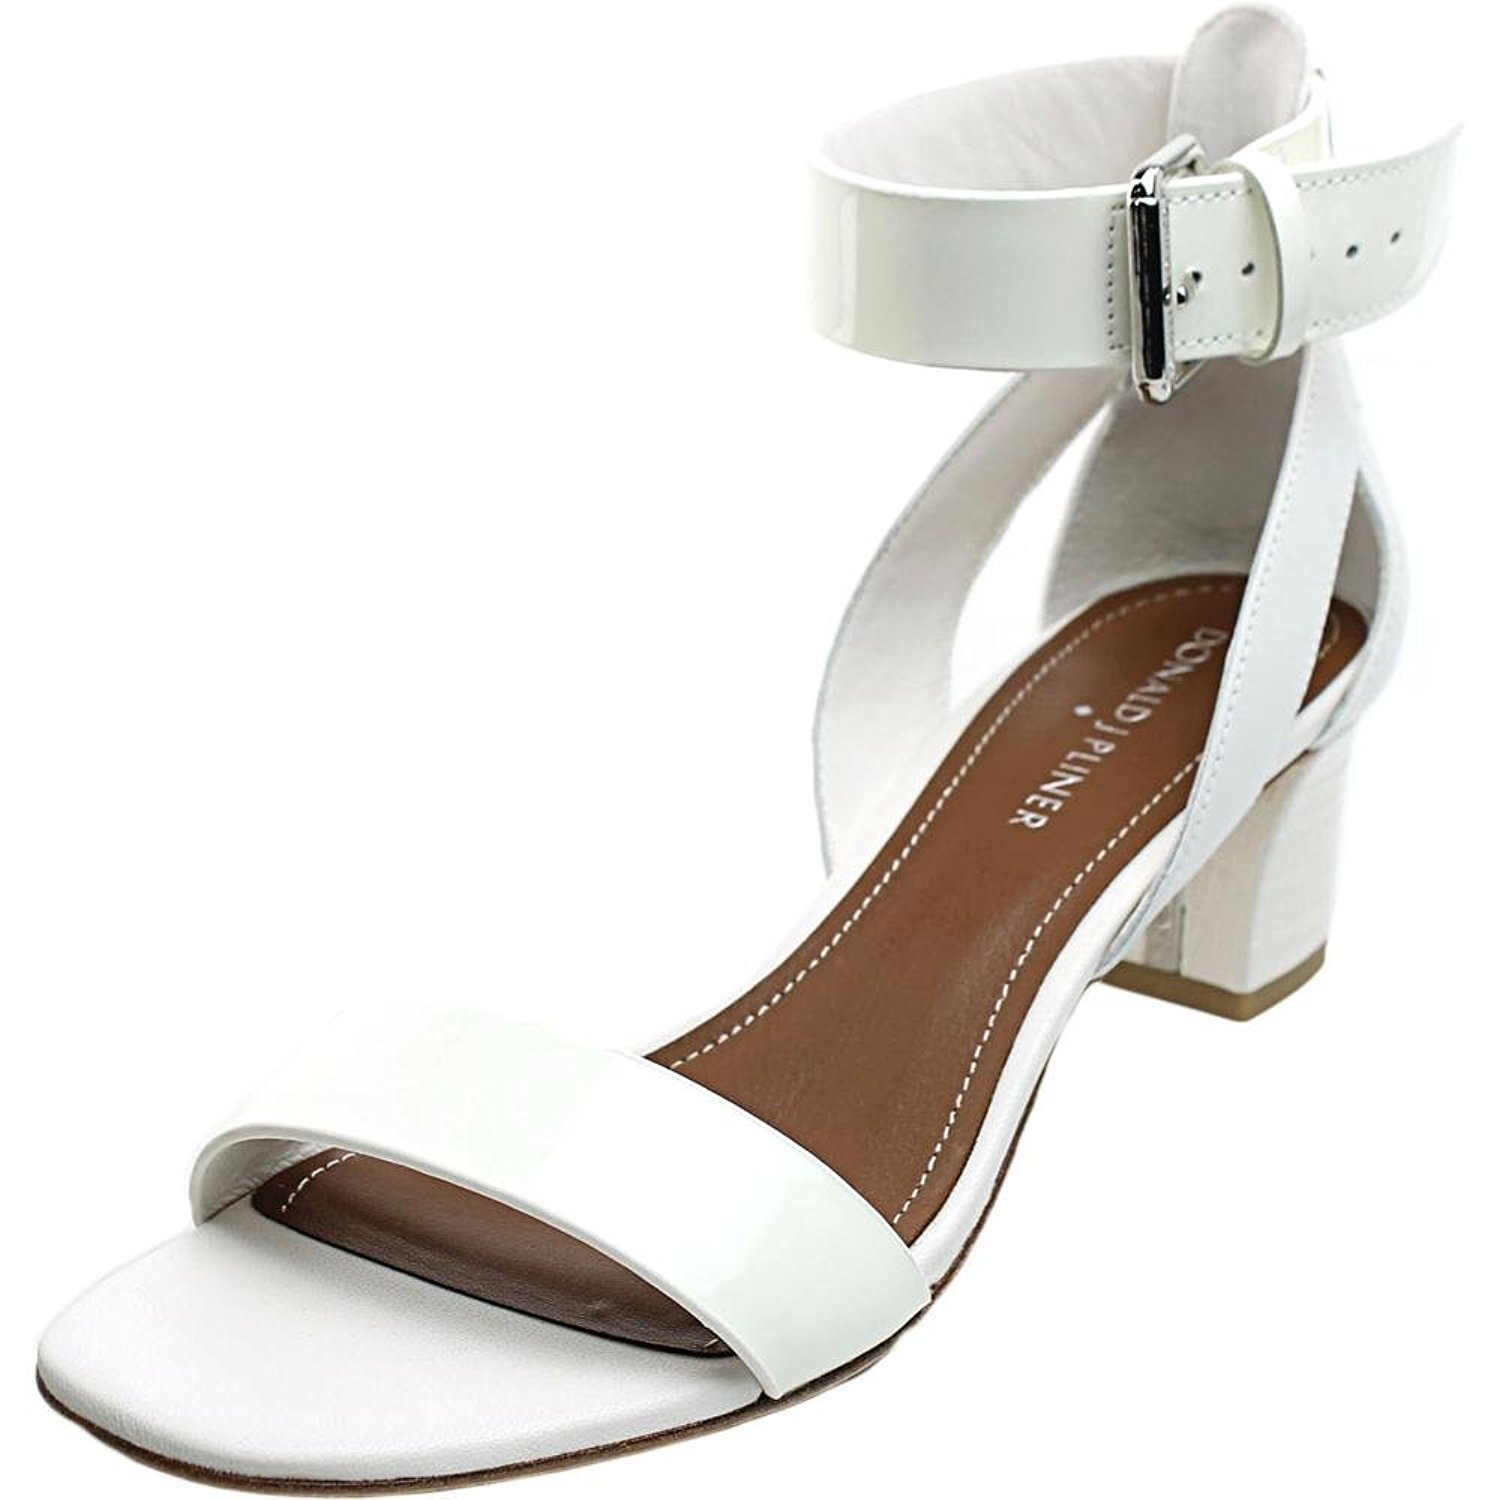 Donald J Pliner Womens Farah Leather Open Toe, White/White Patent/Calf, Size 8.5